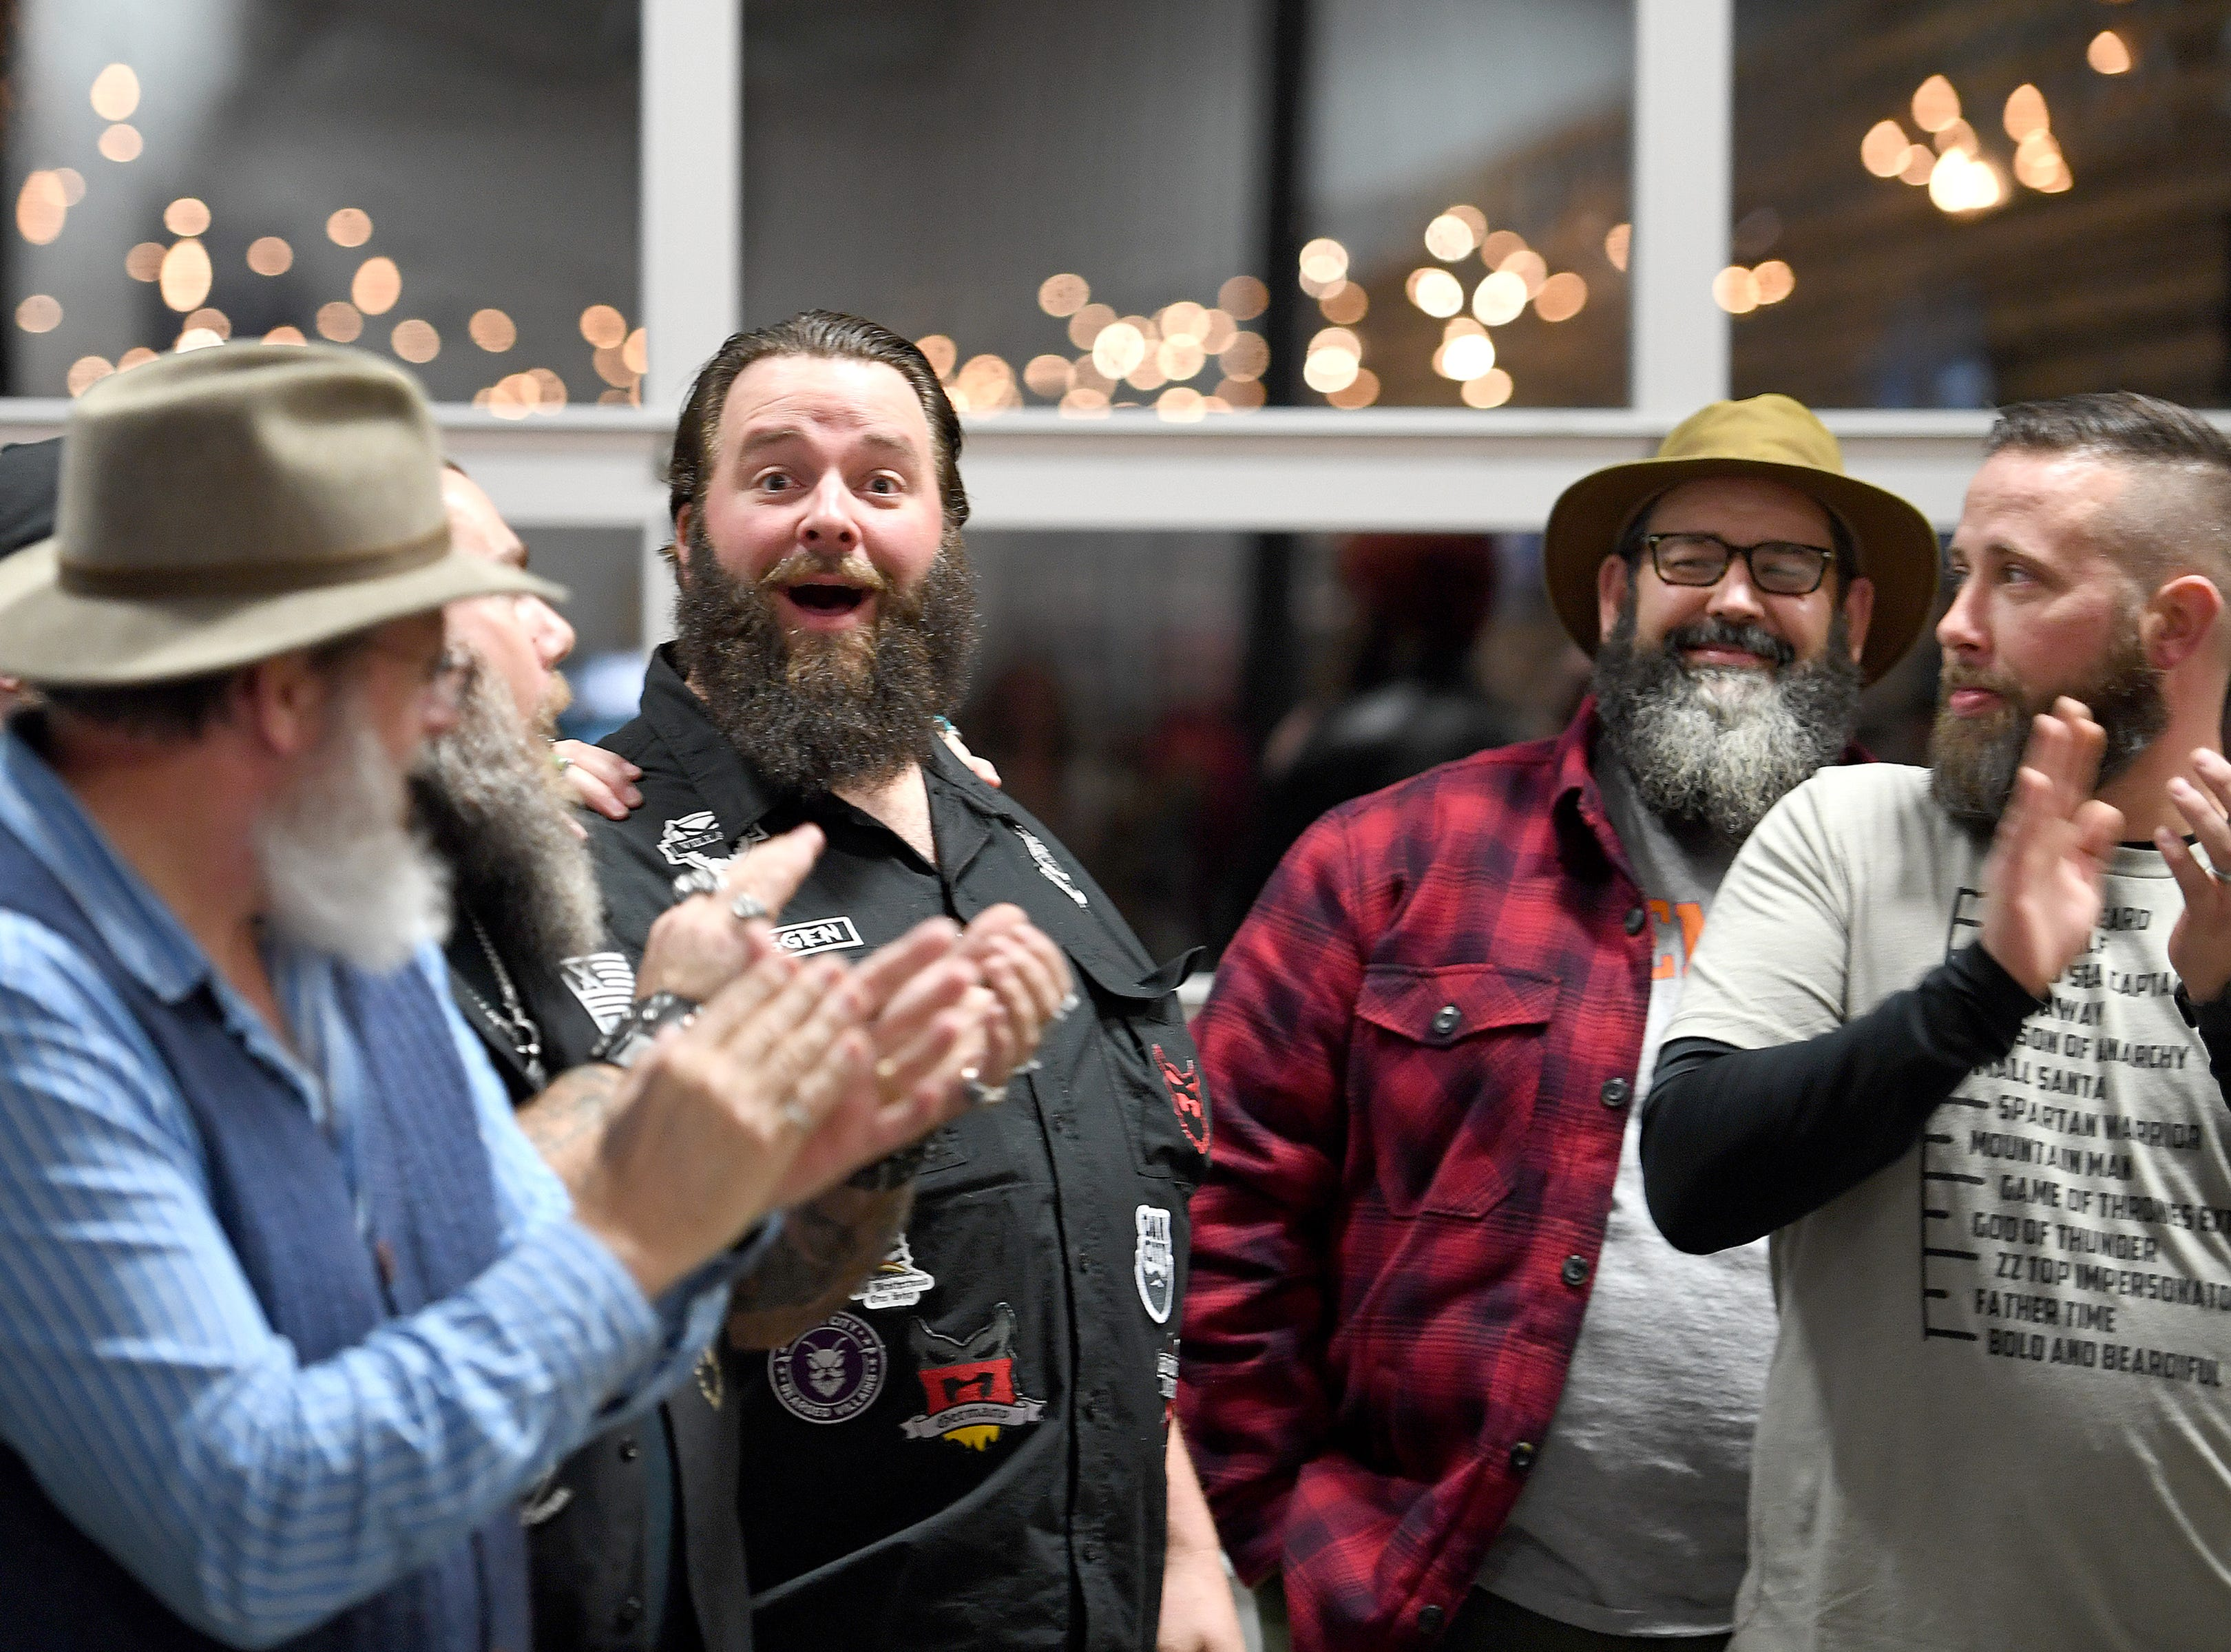 Adam Page reacts as he announced as the winner of baby beard category of the beard competition during Winter Beardfest at Bold Rock Hard Cider in Mills River on Jan. 12, 2019. Proceeds from the competition benefitted the Black Mountain Home Foster Care. Organizers are hoping to make the event annual.